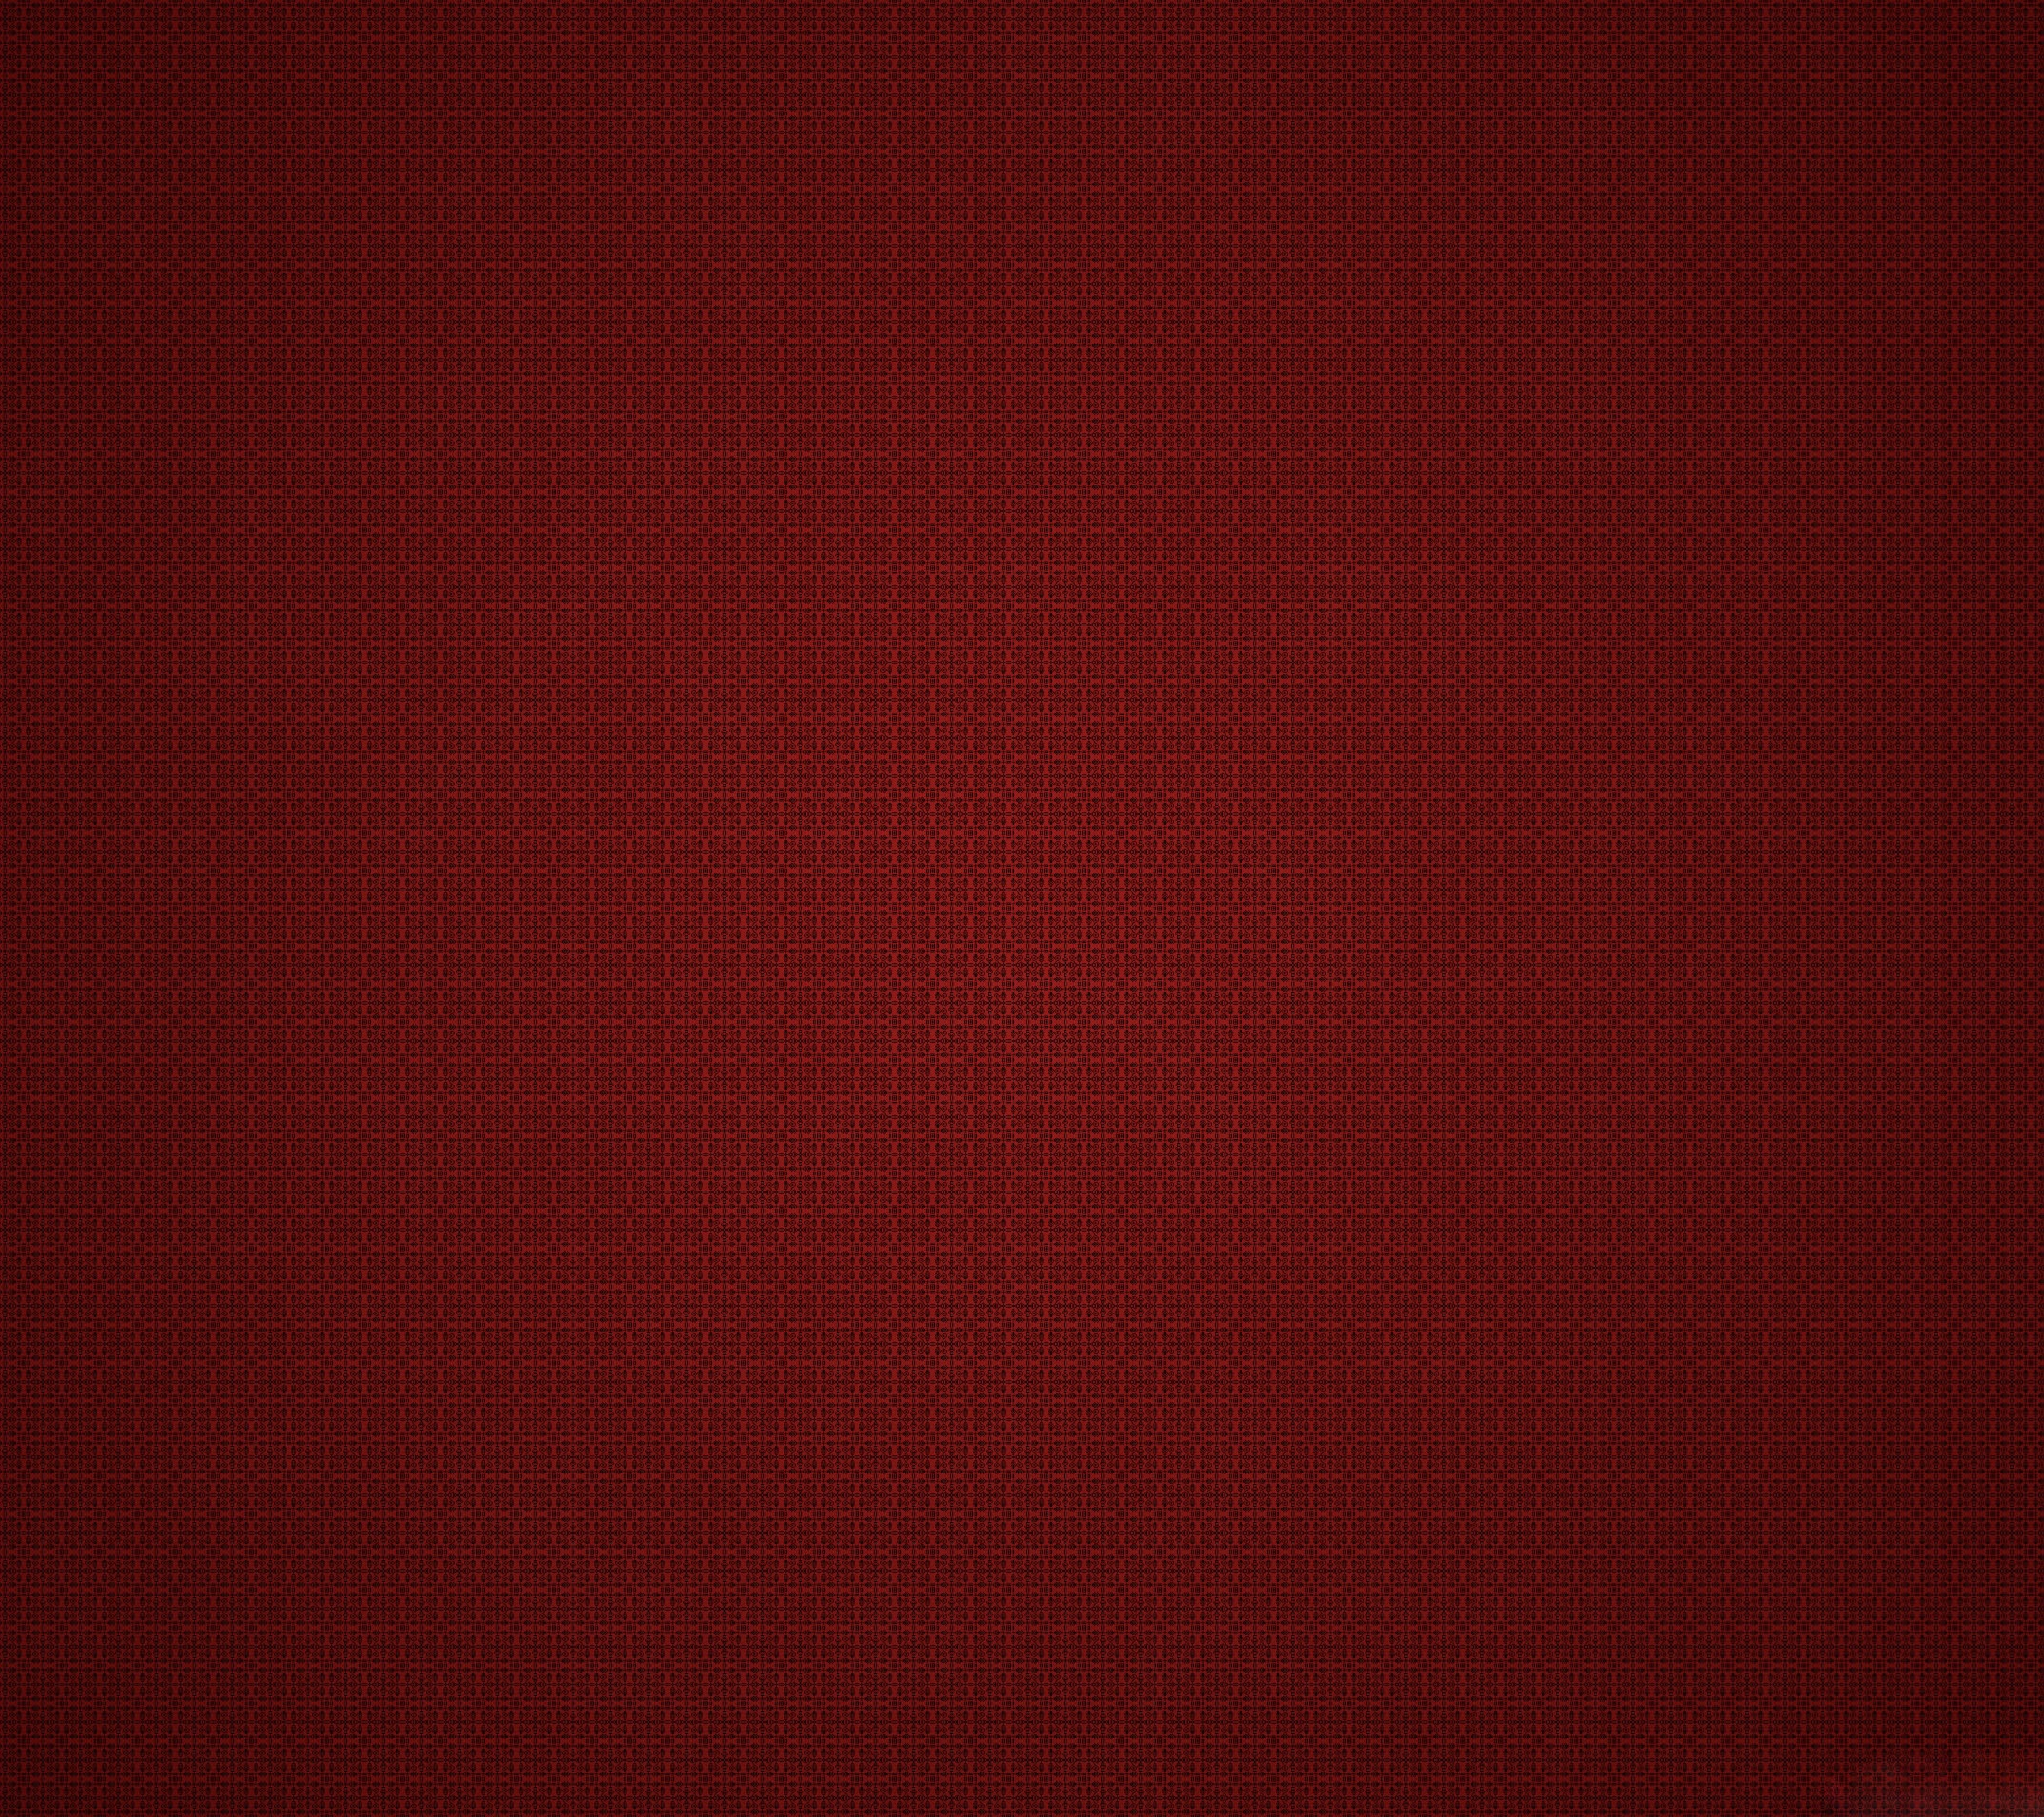 Scarlet Red Wallpaper